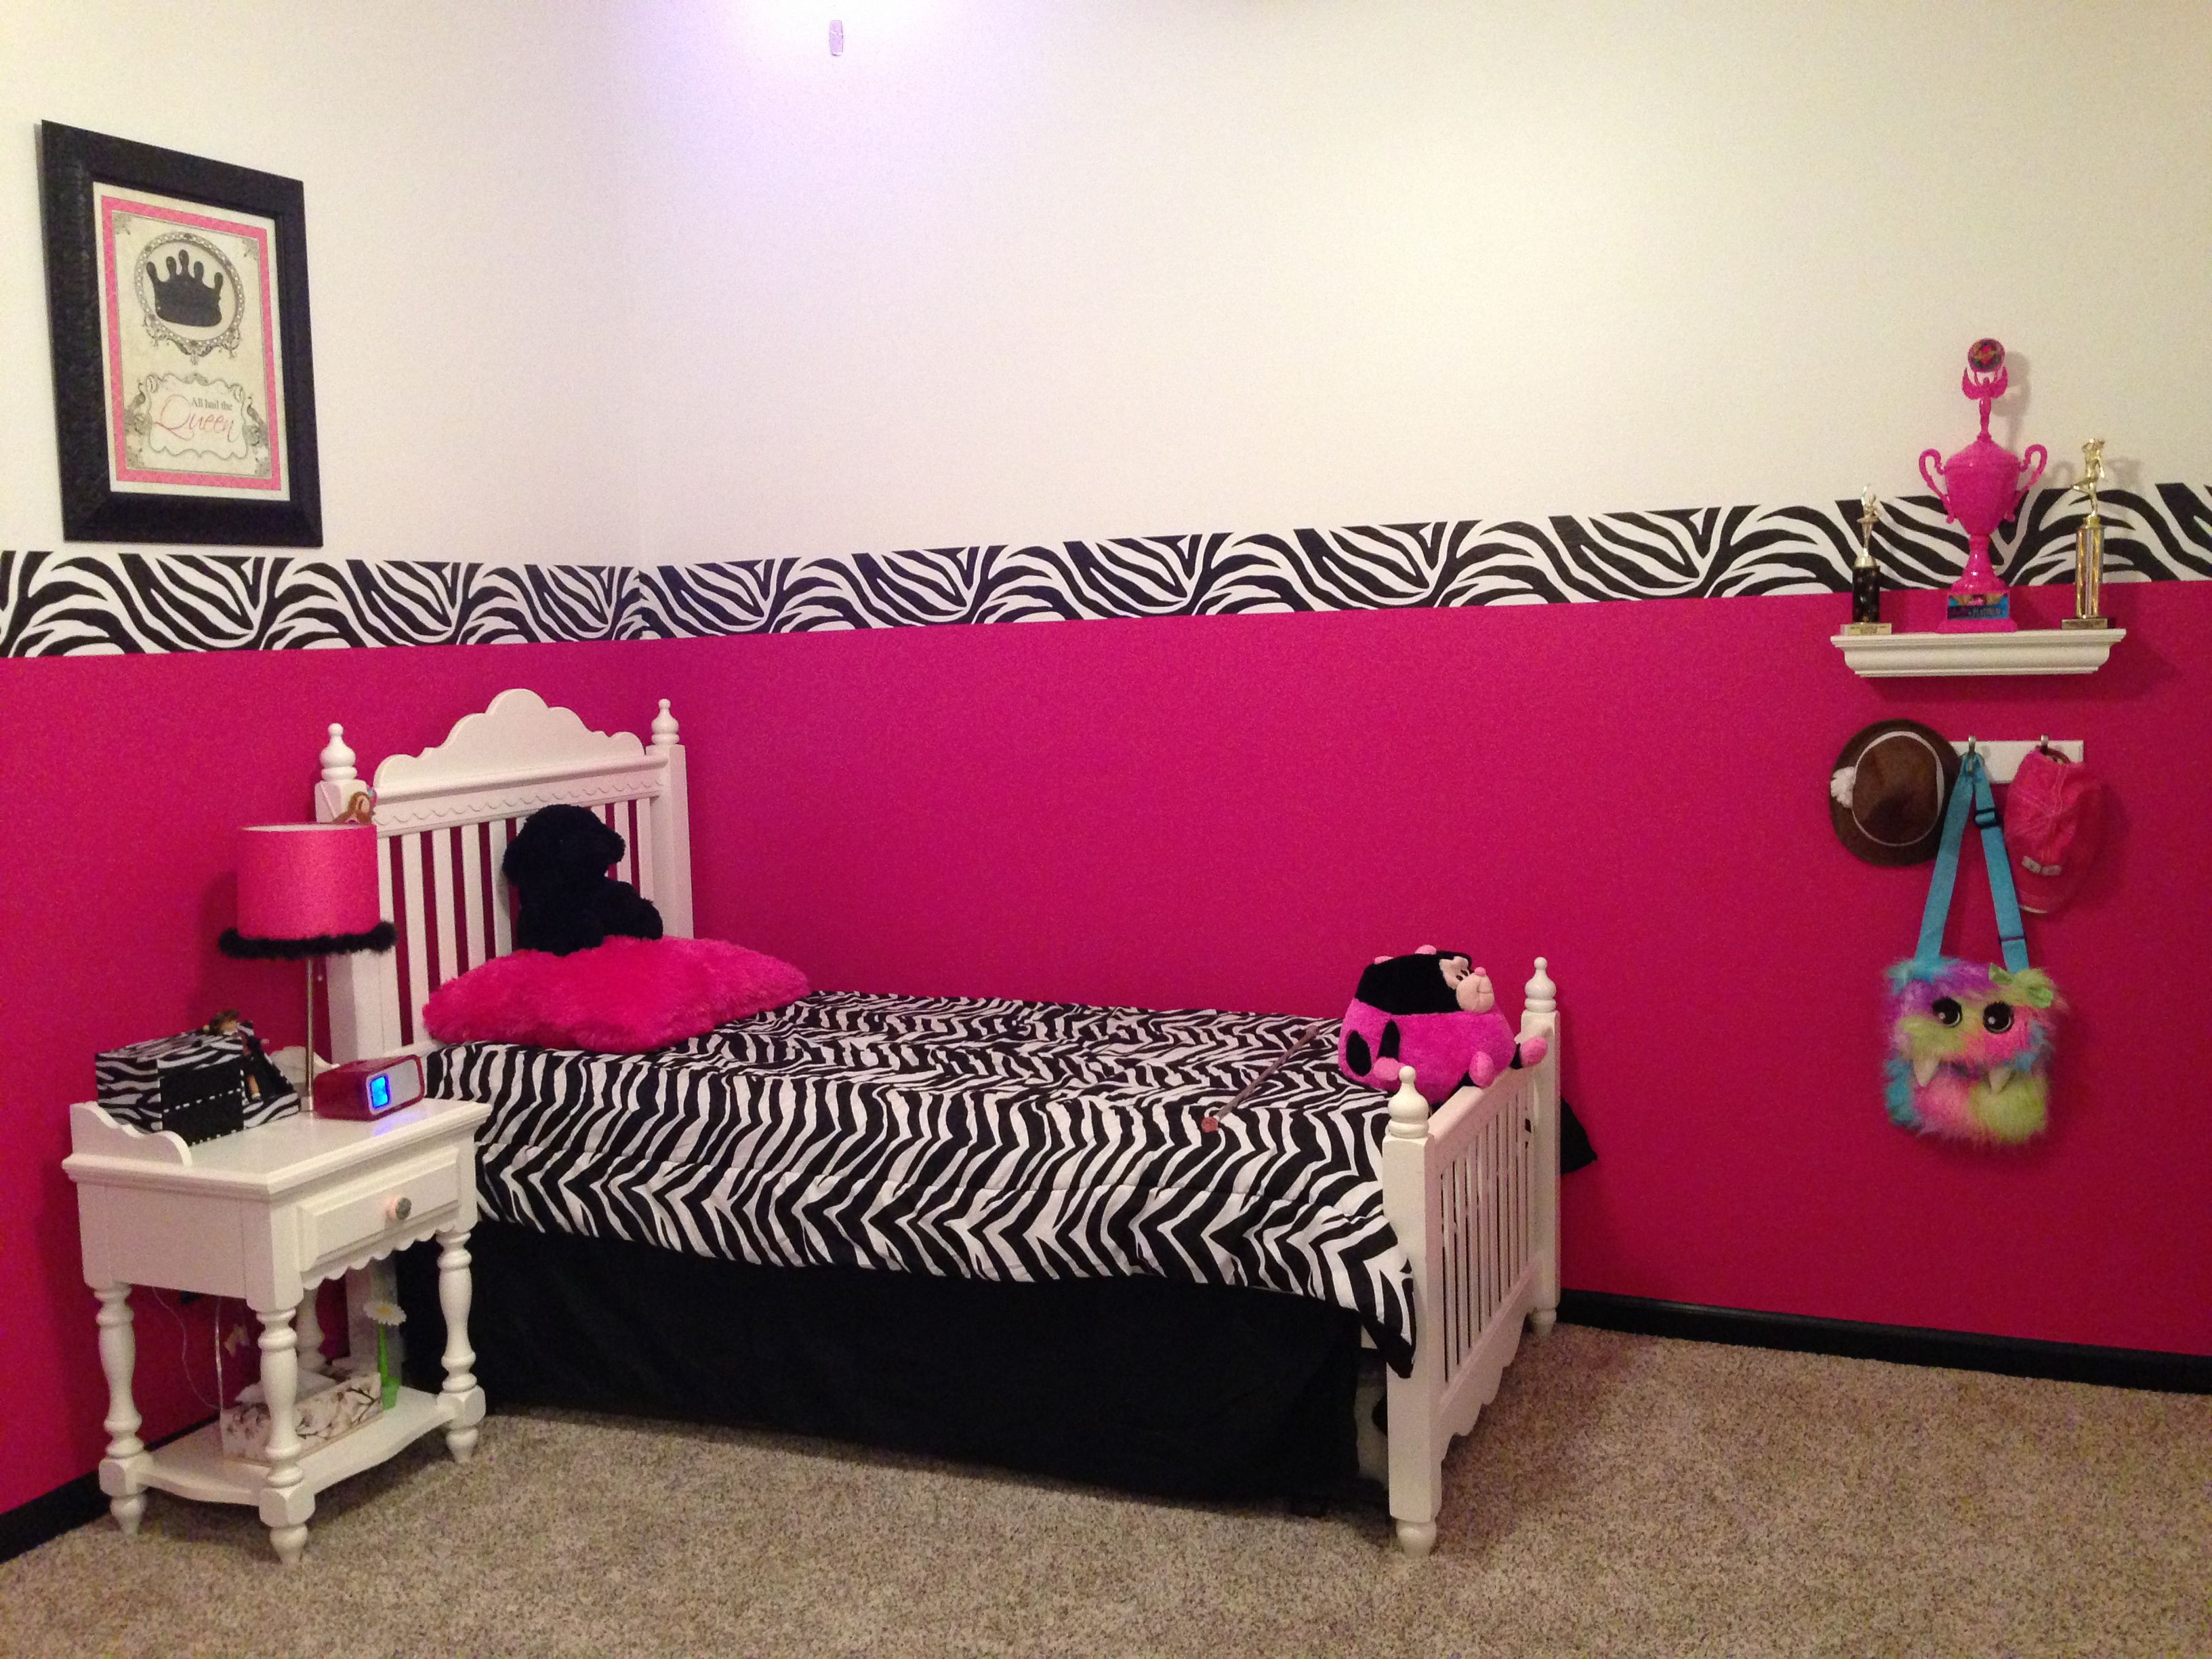 hot pink zebra room decor pinterest pink zebra rooms 19471 | 0a5fee2a715a1b60d9b698aca86beefb